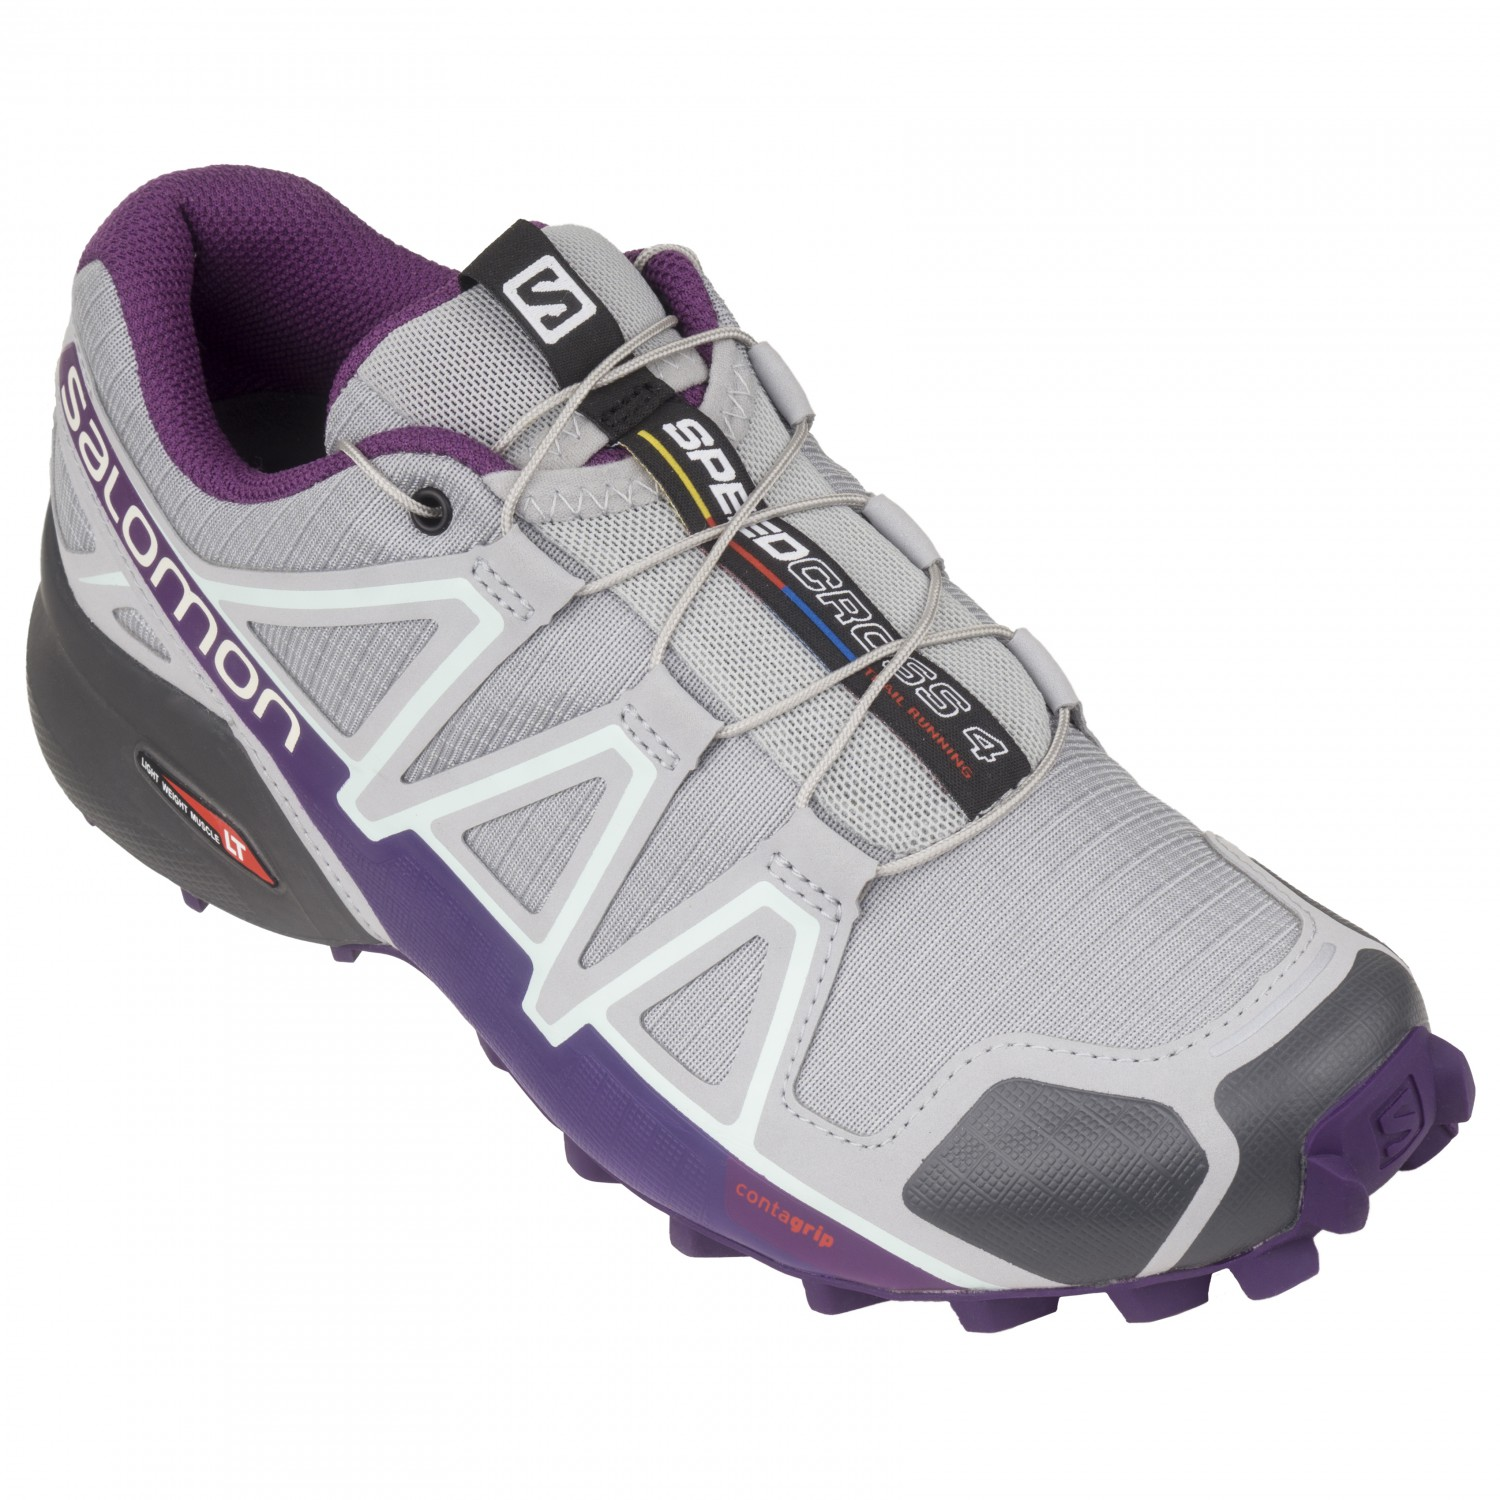 Salomon - Women's Speedcross 4 - Trailrunningschuhe Quarry / Acai / Fair Aqua